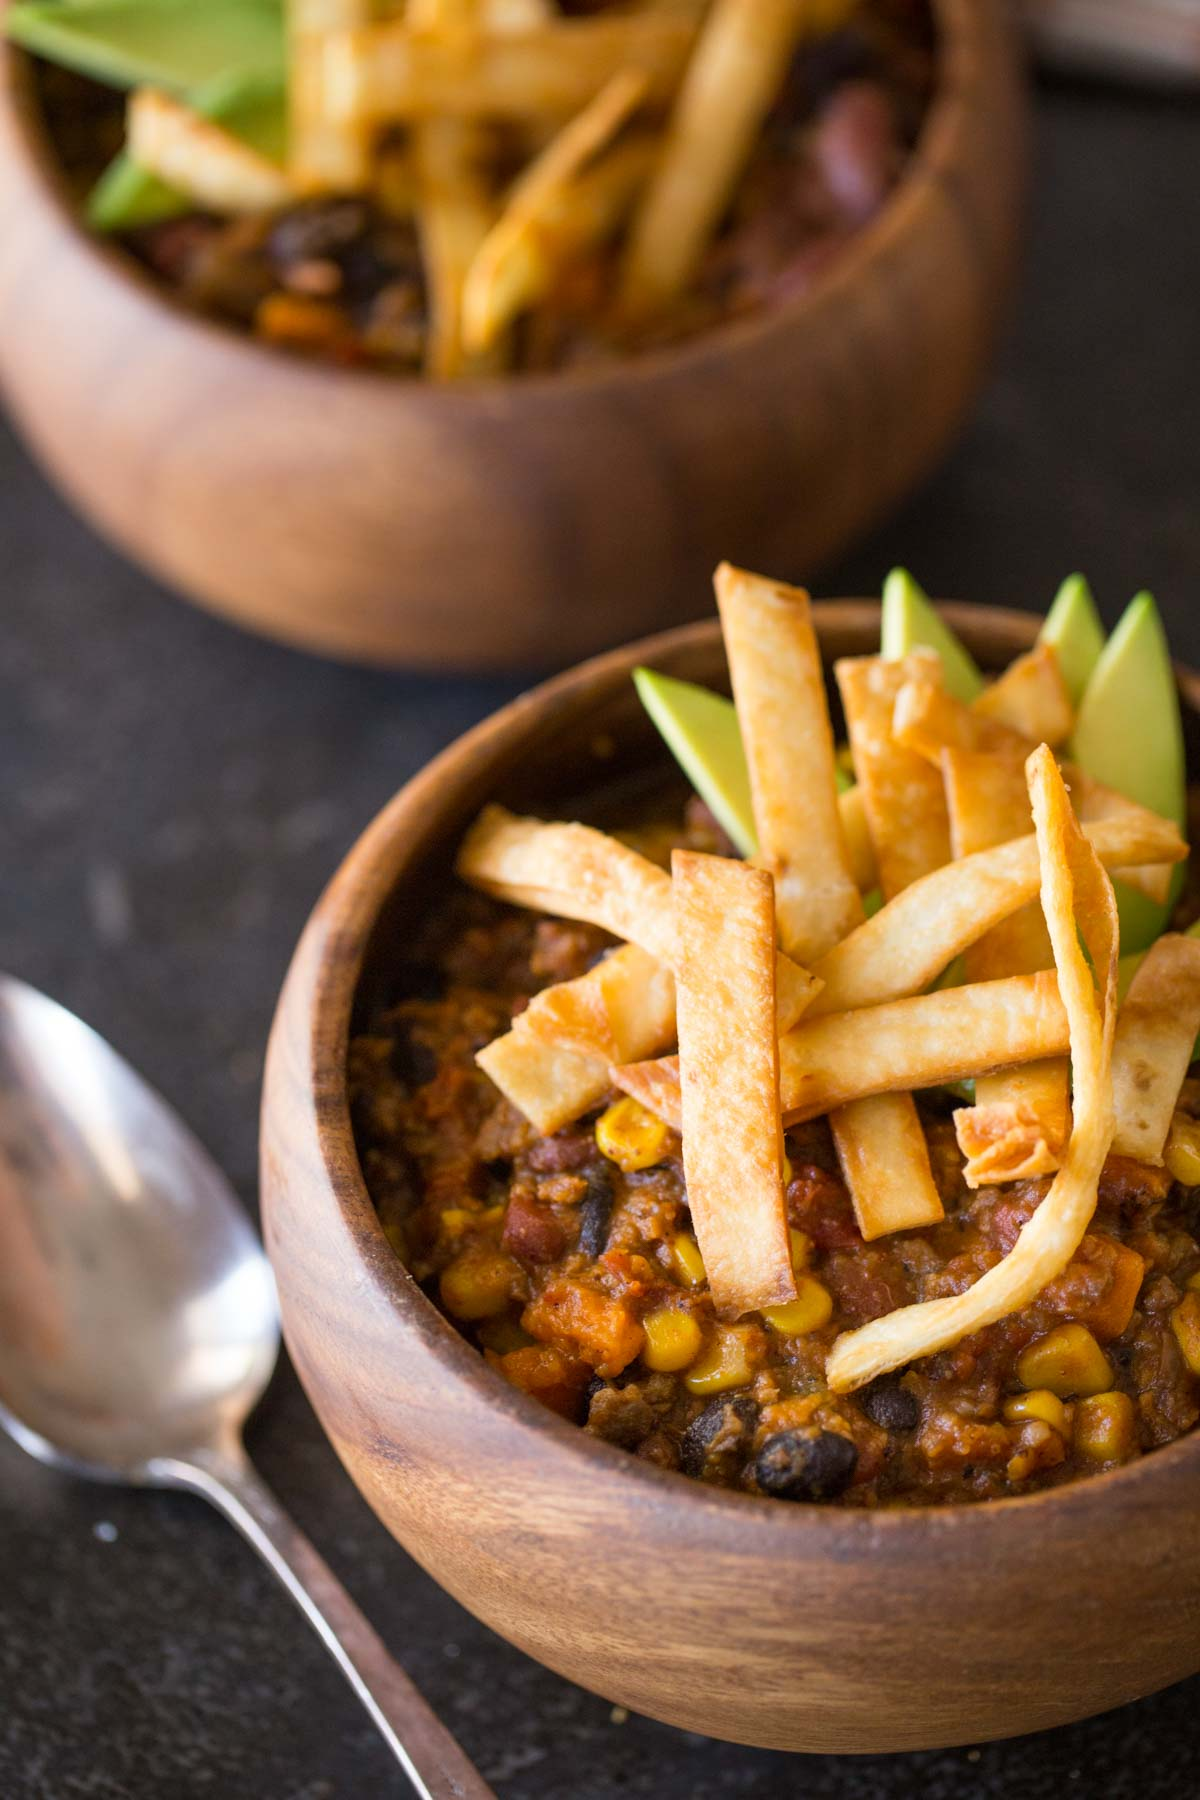 Two wood bowls of Sweet Potato Chili, topped with Fried Tortilla Strips and sliced avocado.